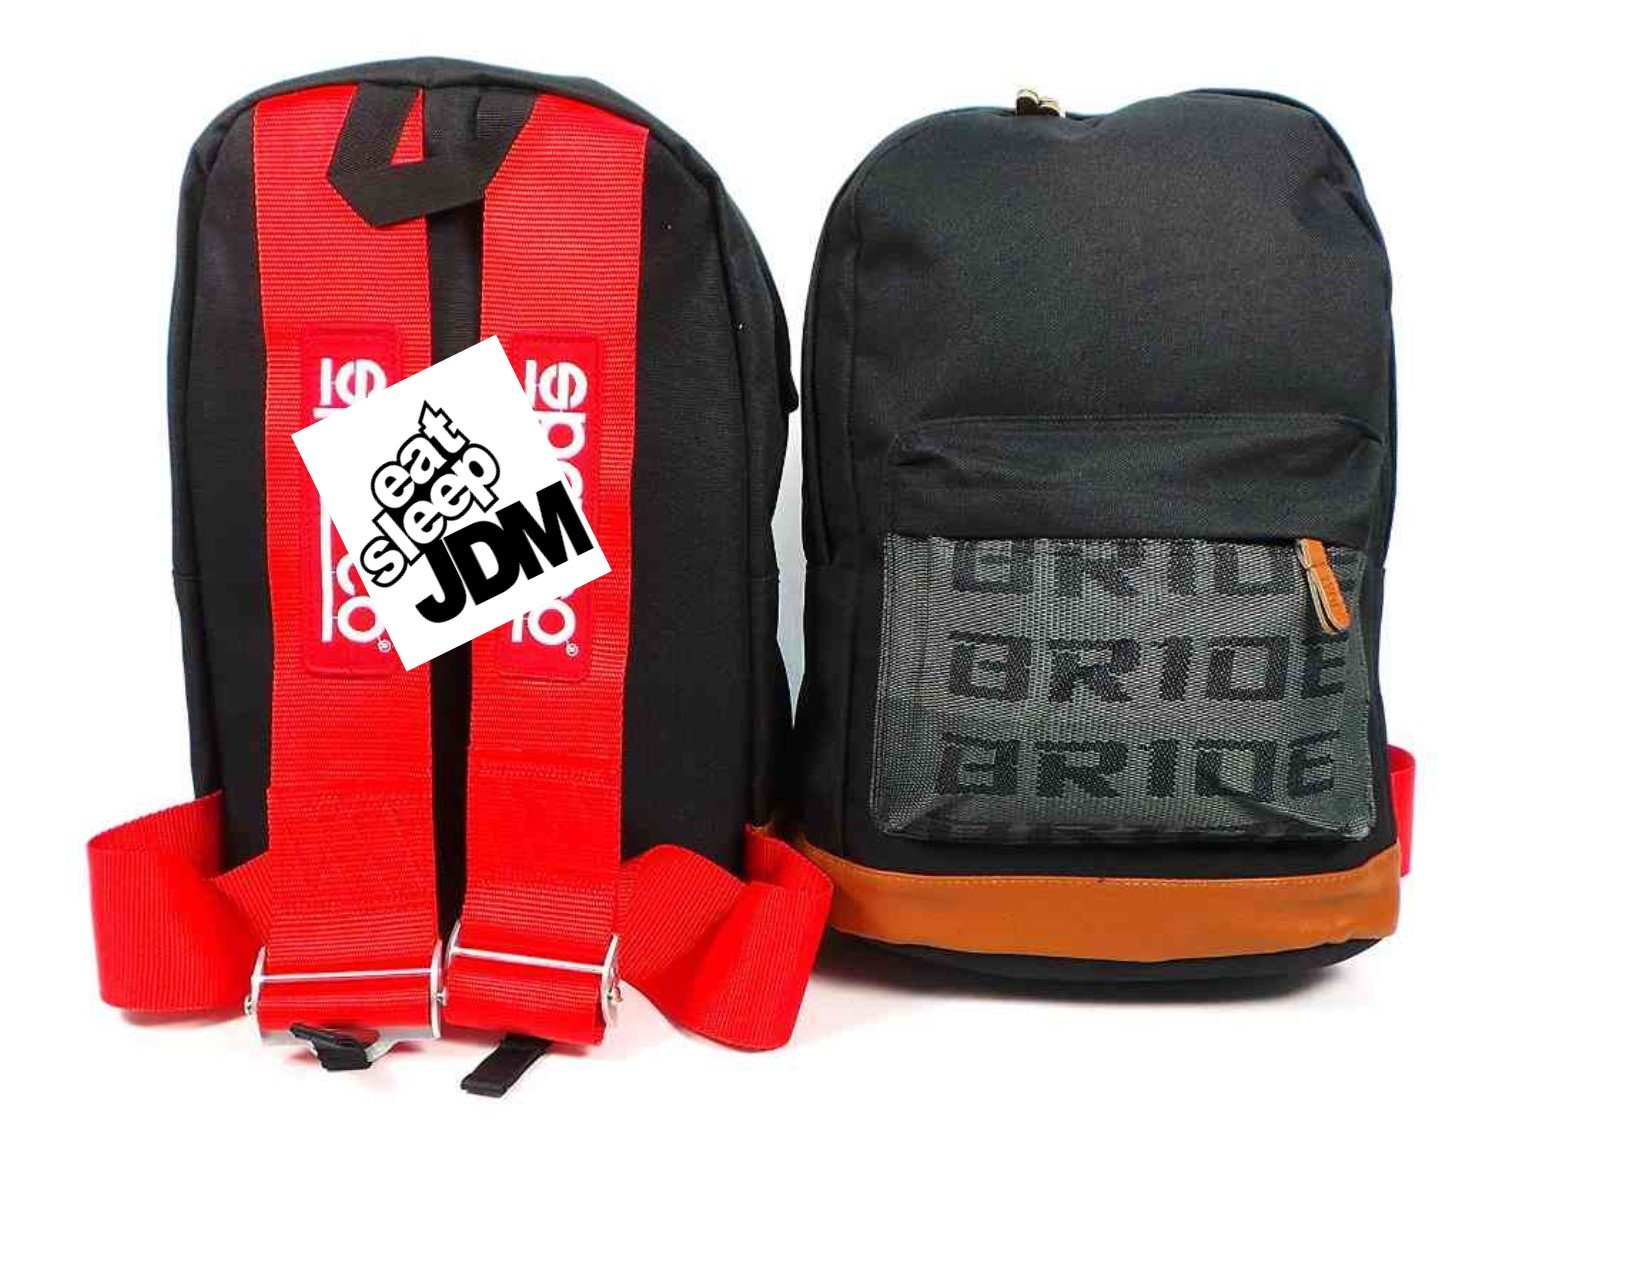 JDM Racing Backpack brown bottom with Red SP Racing Harness Shoulder Straps Super Cool NEW by Generic (Image #1)